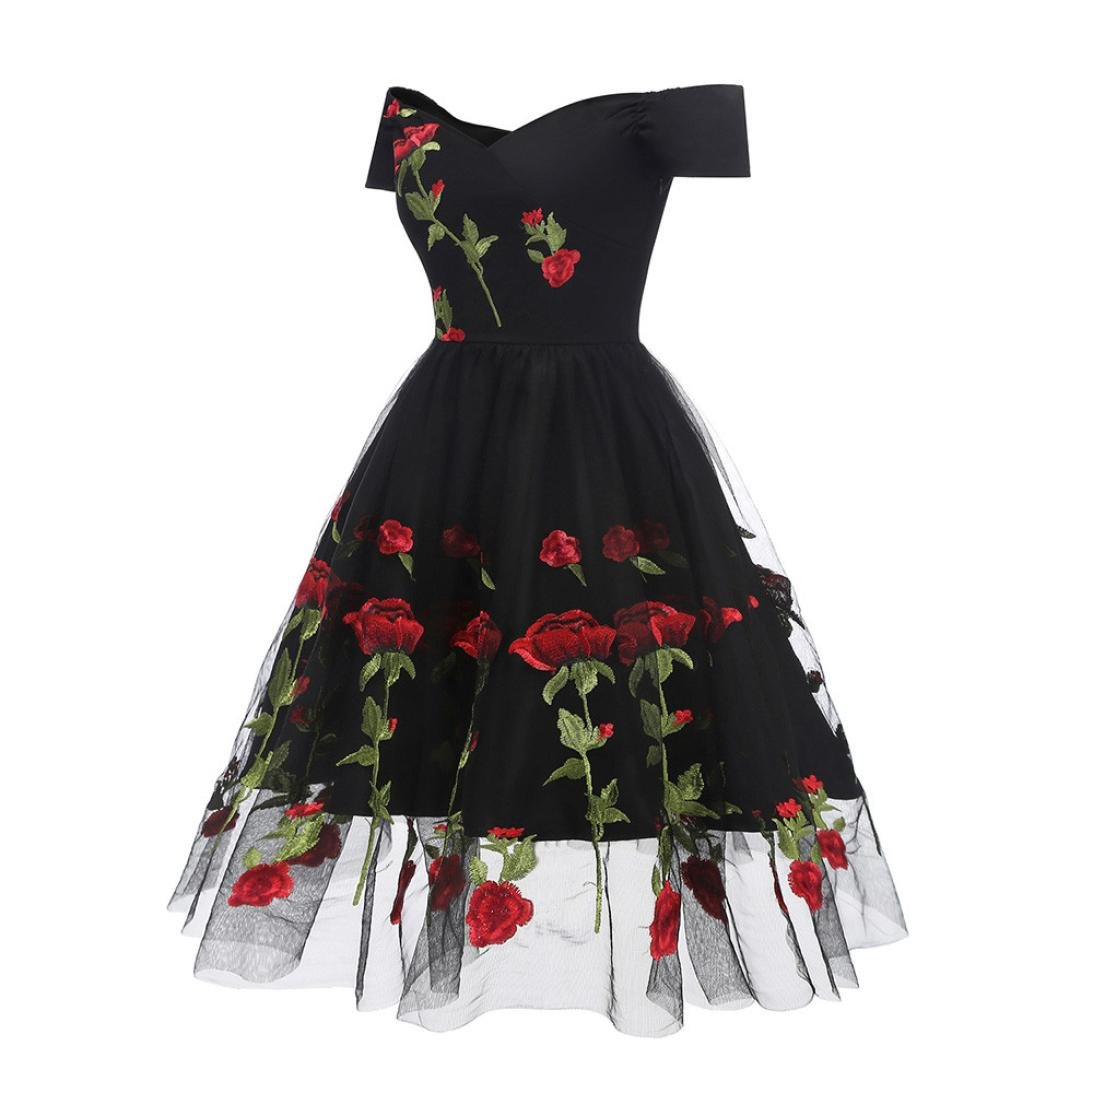 5f6783771e Fashion Embroidery Cocktail Dresses Women s Vintage Princess Dress Retro  Rose Floral Ruched Off Shoulder Party Dress at Amazon Women s Clothing  store